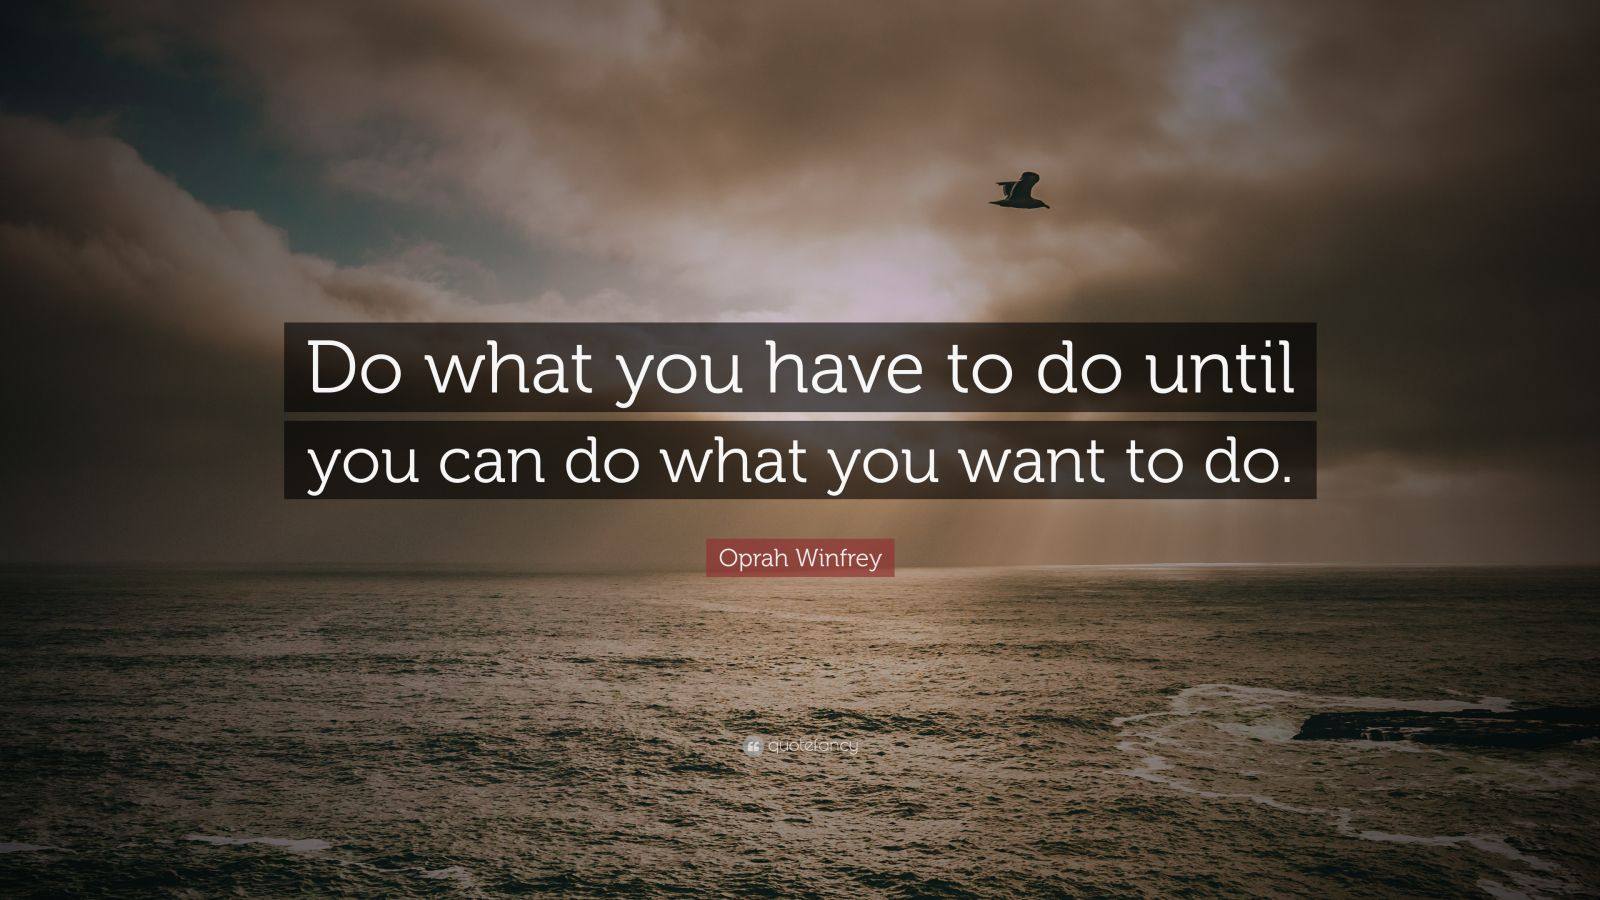 Oprah Winfrey Quote Do What You Have To Do Until You Can